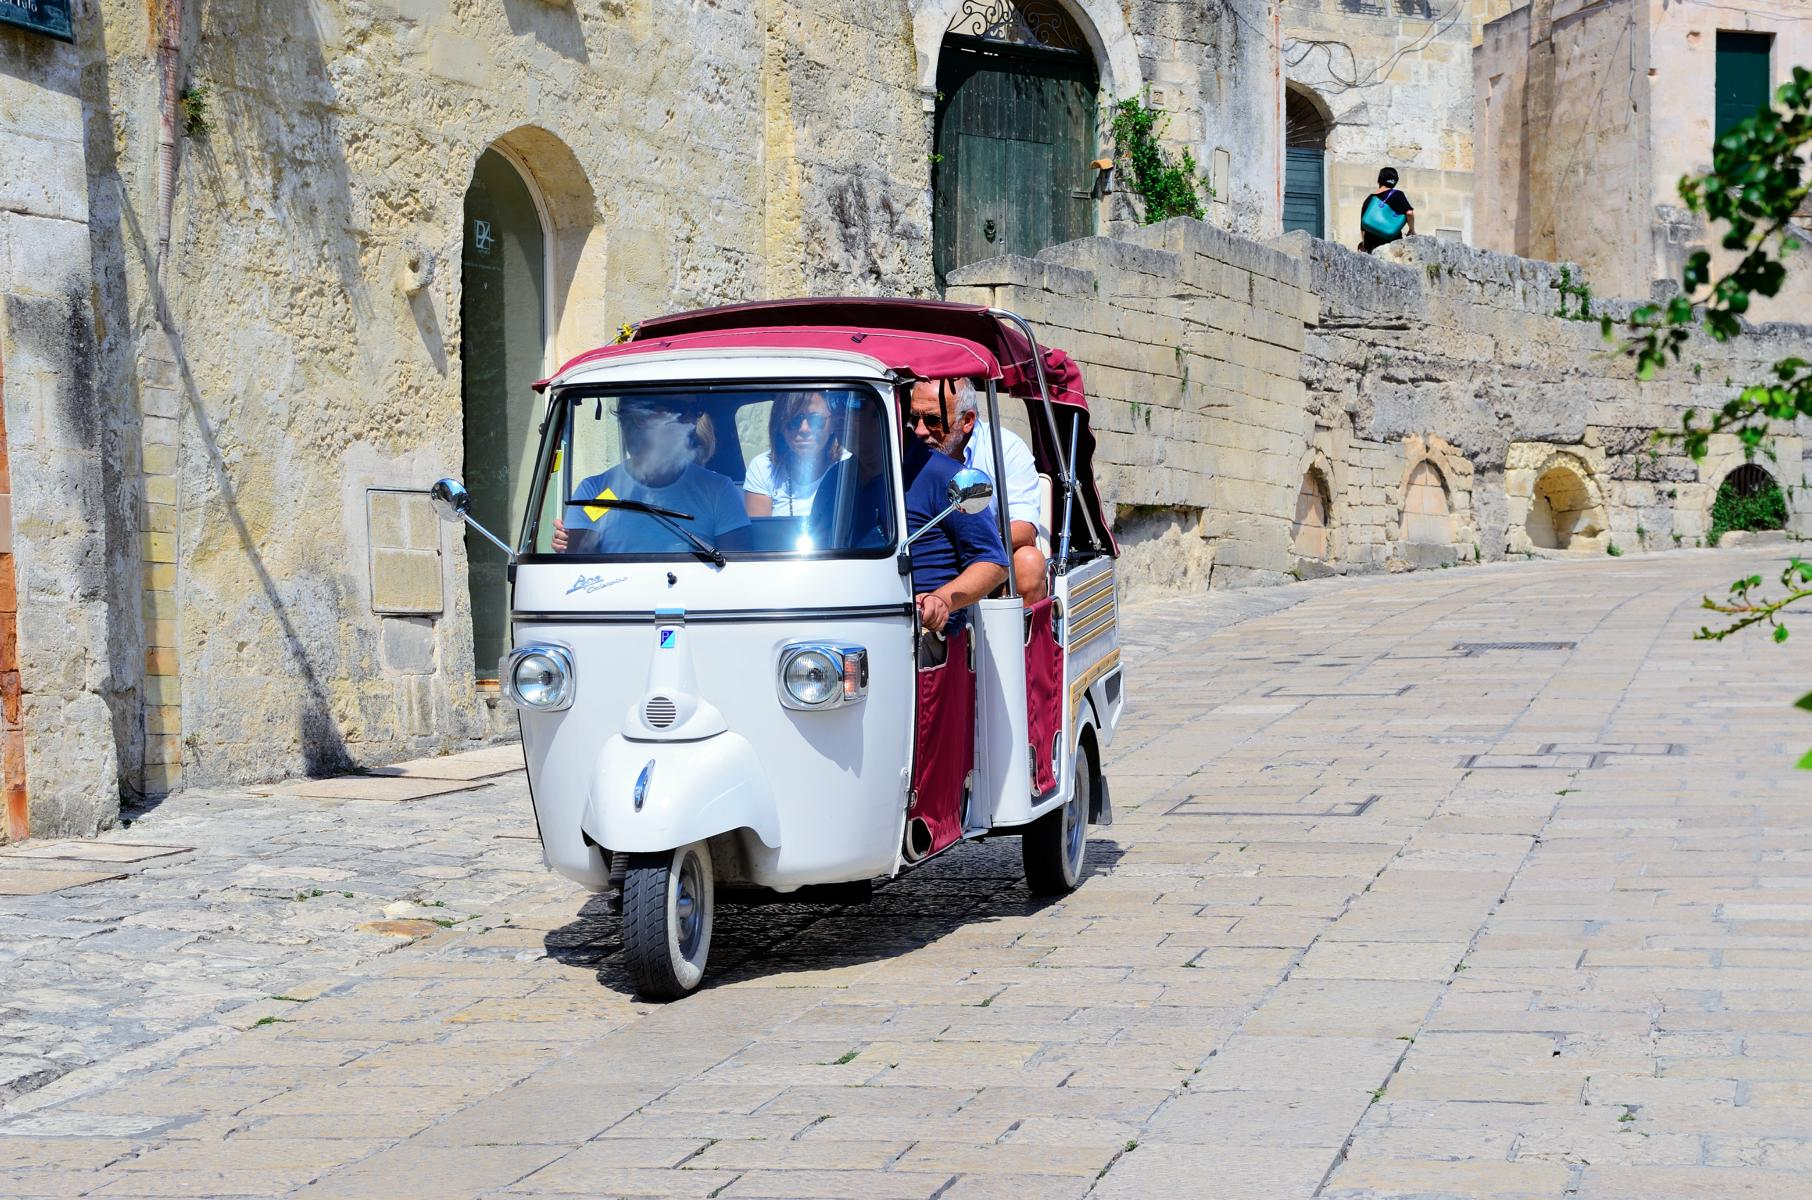 Rundreise - K1600_Xtourists-around-the-historic-village-of-stones-with-a-characteristic-three-wheeler-August-20-2016-Matera-Italy.jpg